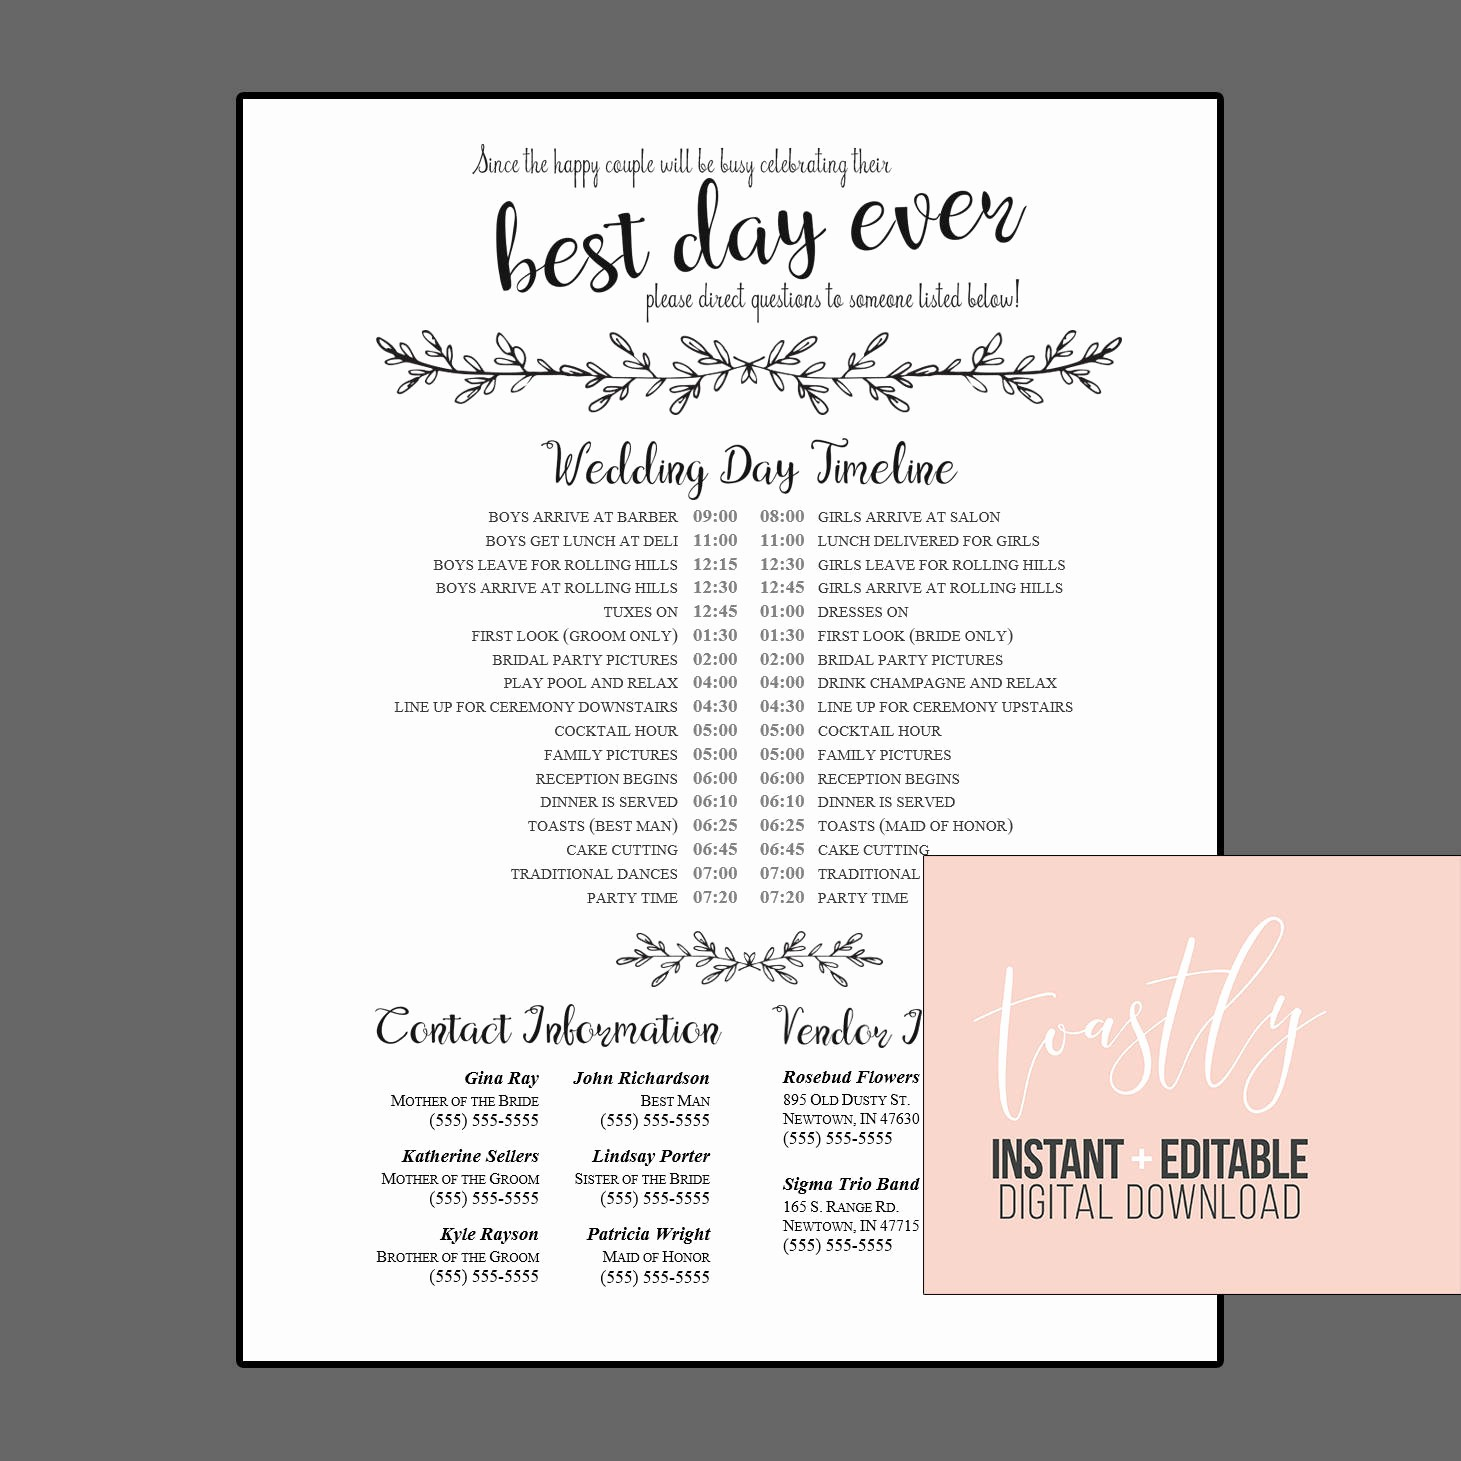 Wedding Day Timeline Template Free Elegant Editable Wedding Timeline Edit In Word Phone Numbers and